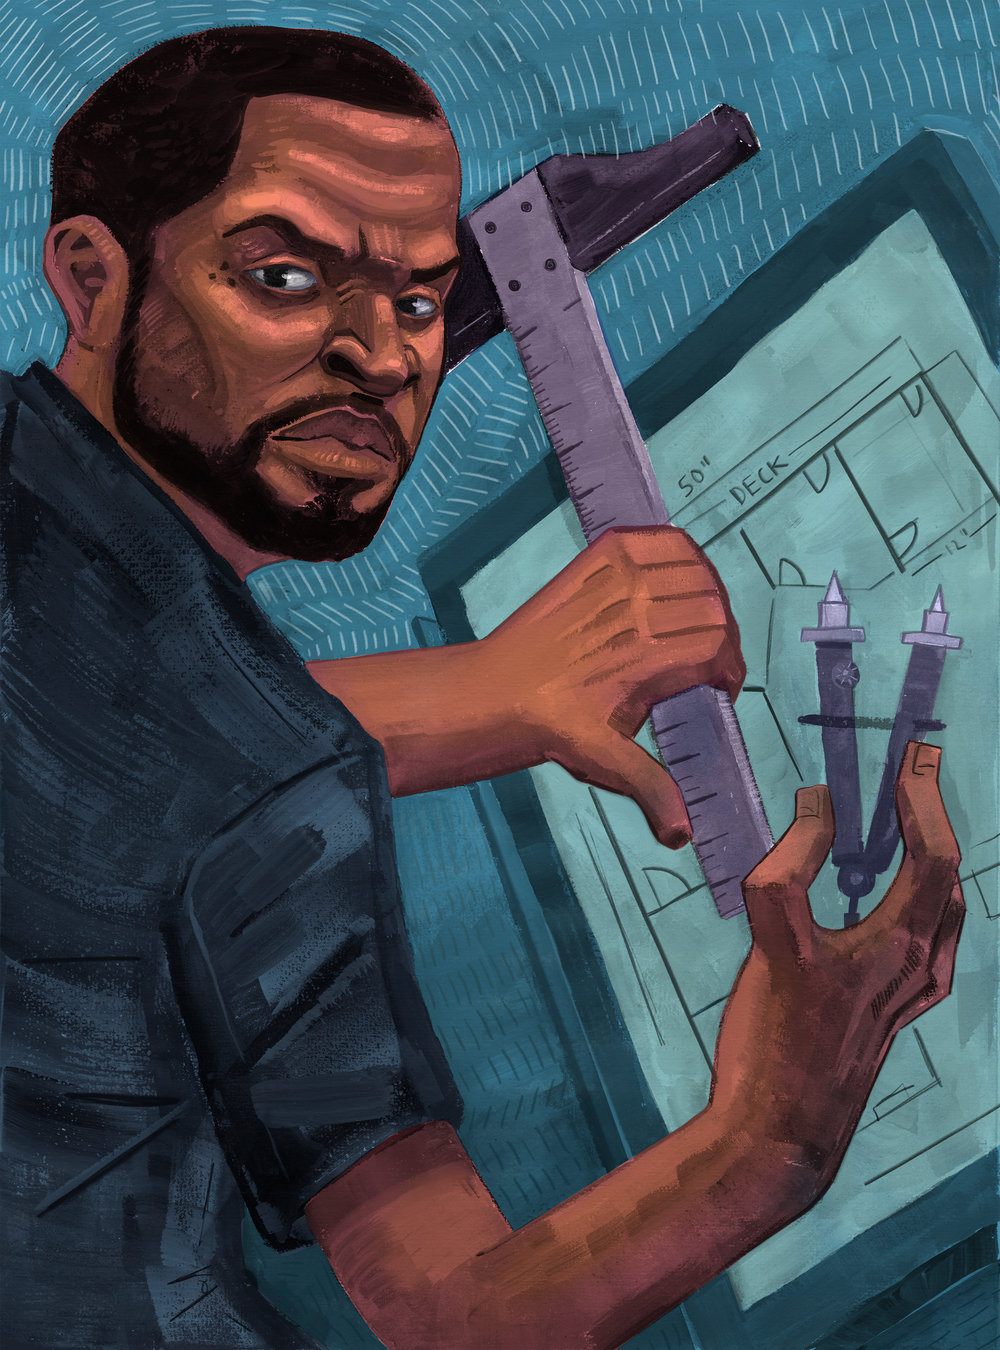 """Ice Cube The Architect/Gouache, Color Pencil and Digital / 8"""" x 10""""    1 of 2 in a small series of illustrations called Past Passions, about rappers and the things they studied before they became rappers. This is about Ice Cube and the period of his life when he studied to be a architectial draftsmen"""